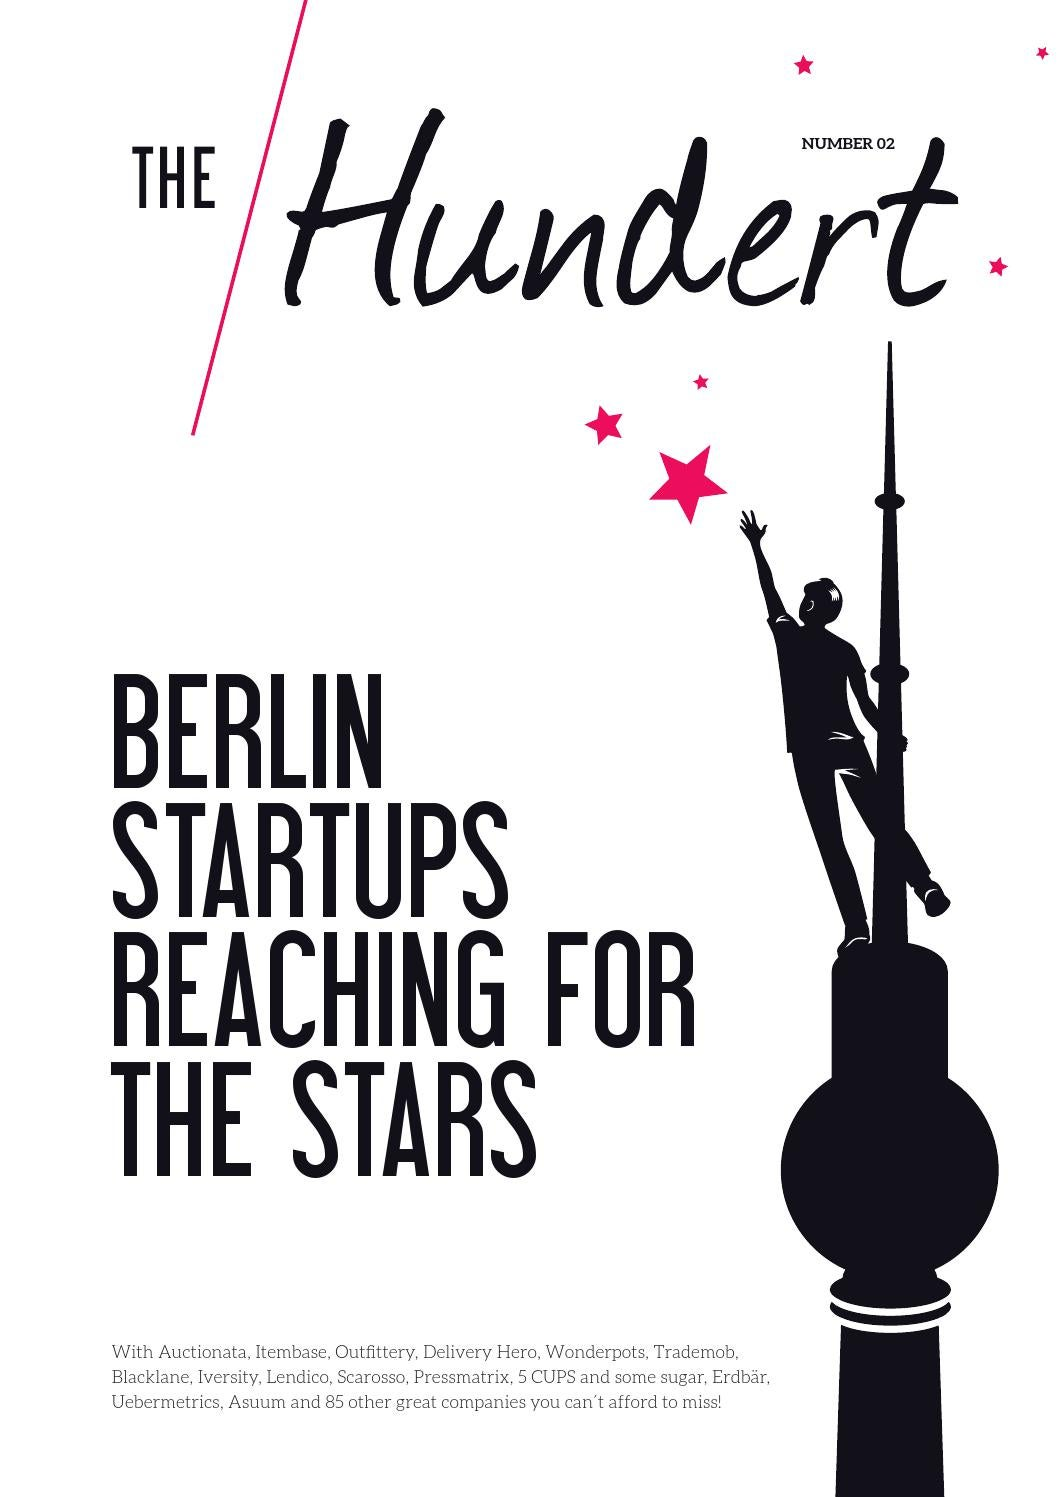 the Hundert Vol  2 - Berlin Startups reaching for the Stars